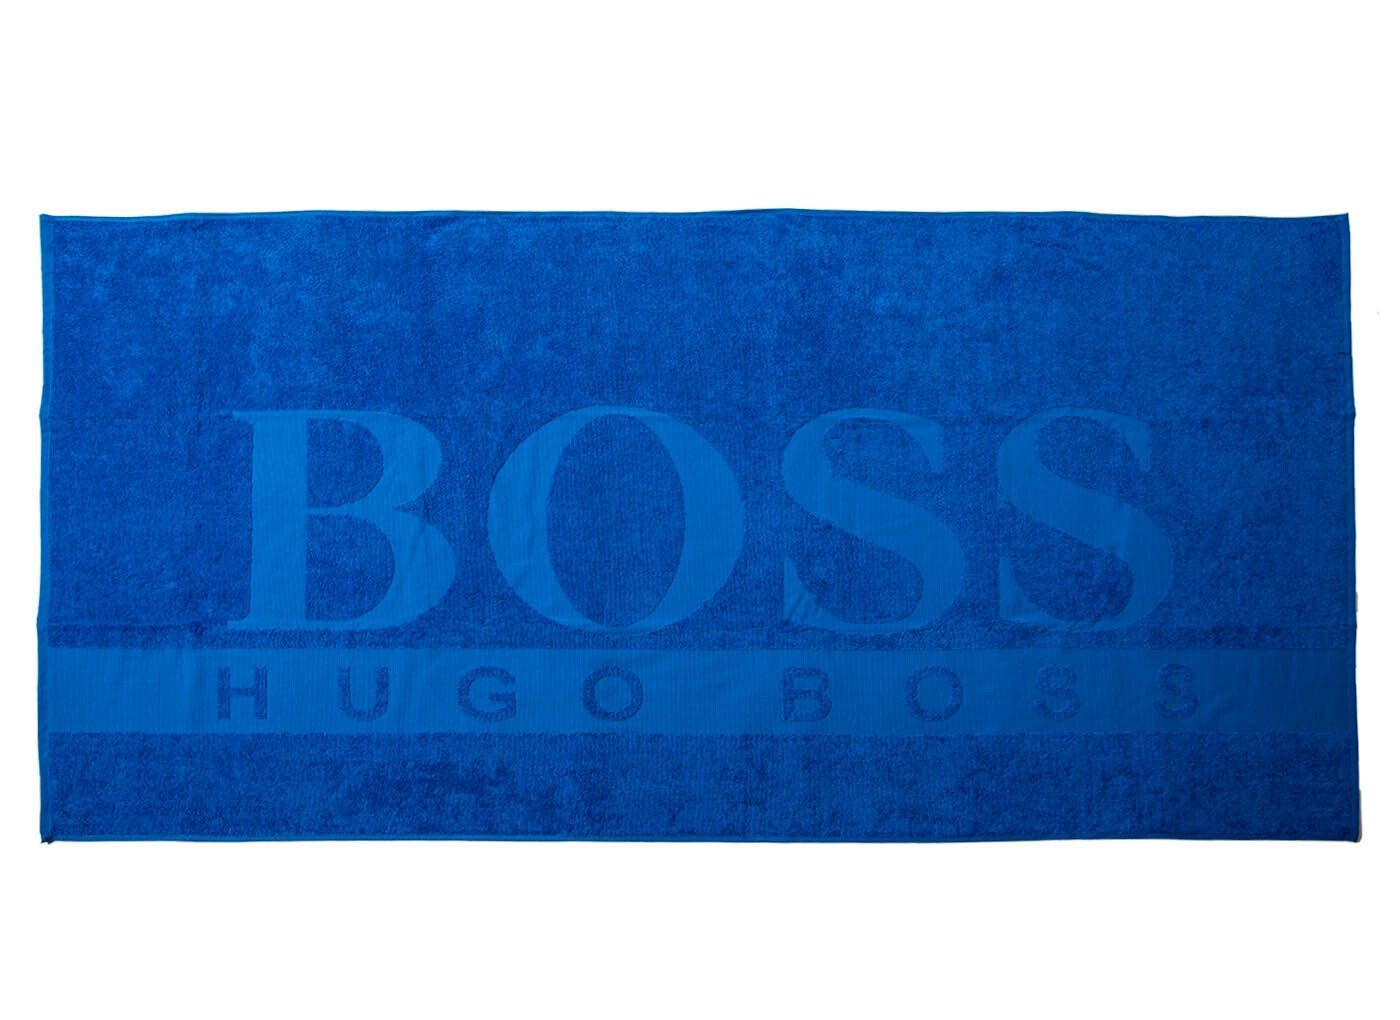 Hugo Boss Bettwäsche Sale Bett Set 4 Teilig 100x135 40x60 Happy Zoo In Bunt